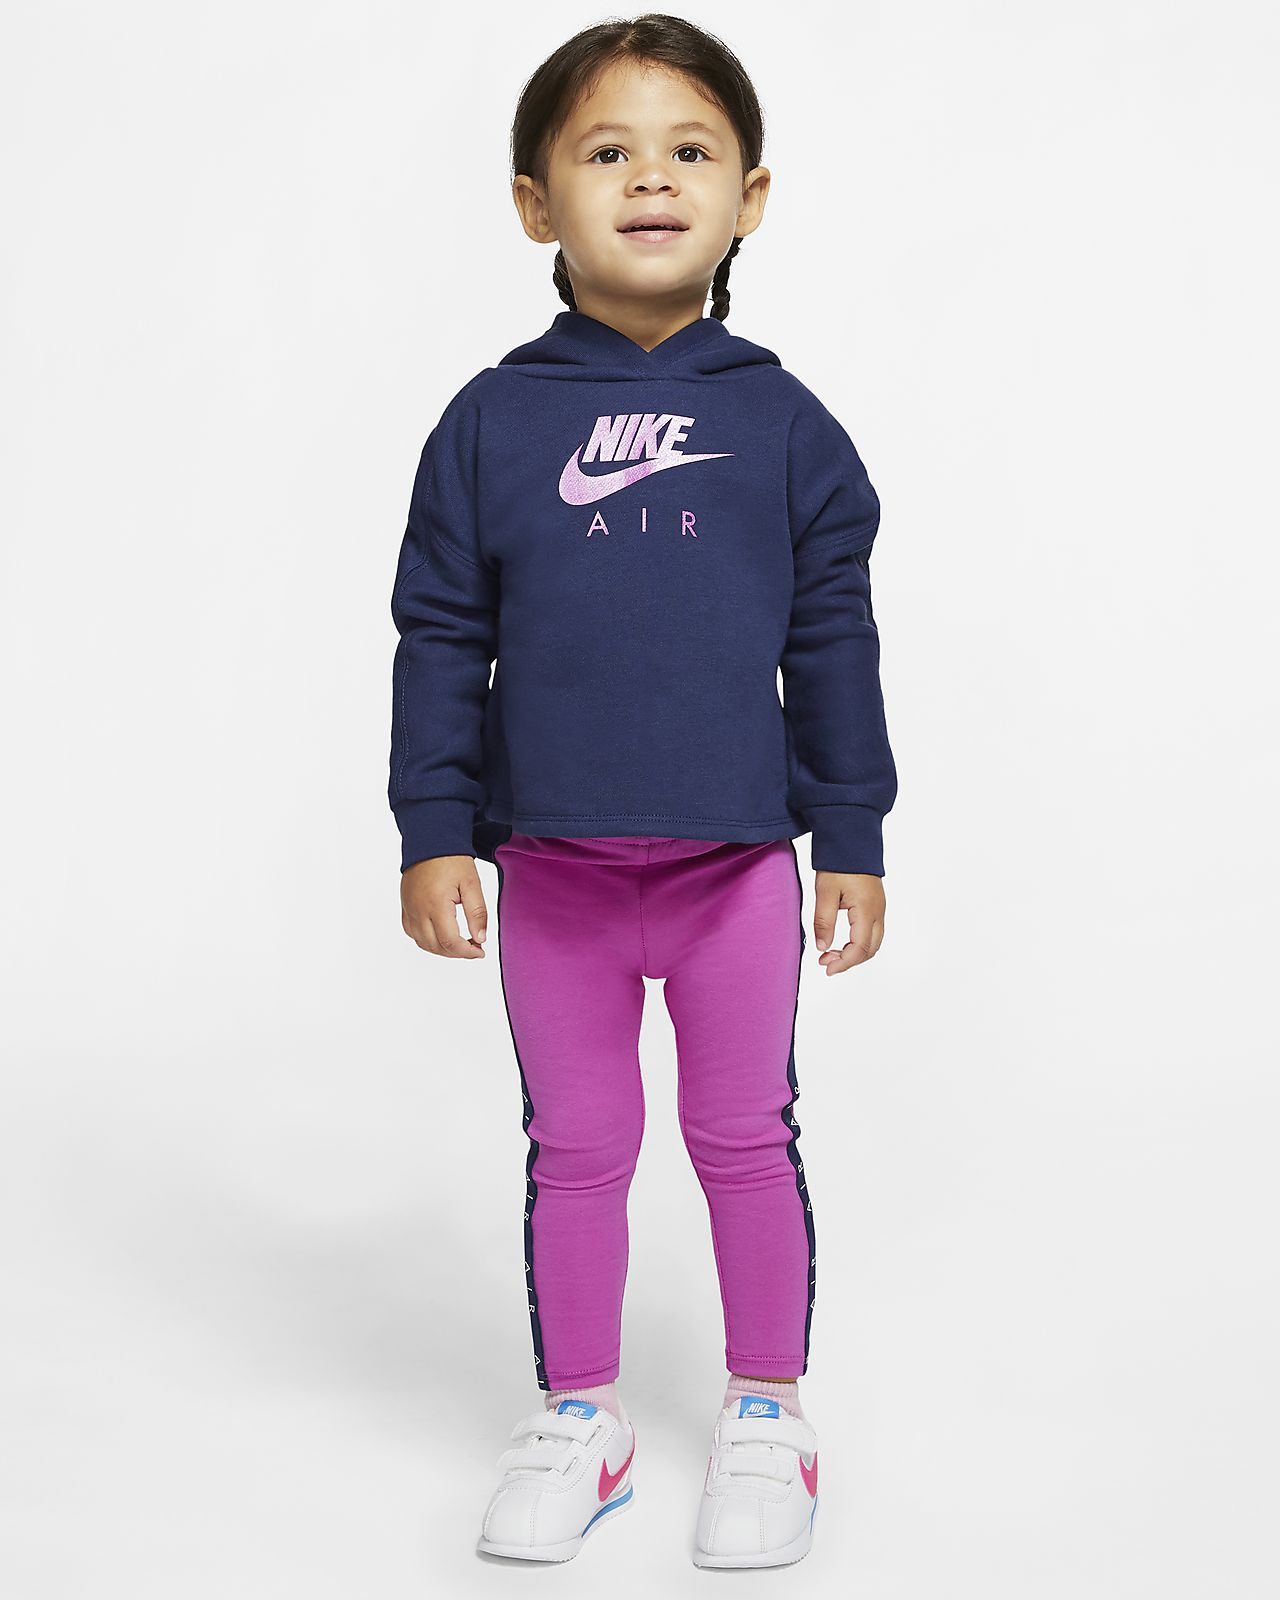 Nike Air Baby (12-24M) Hoodie and Leggings Set